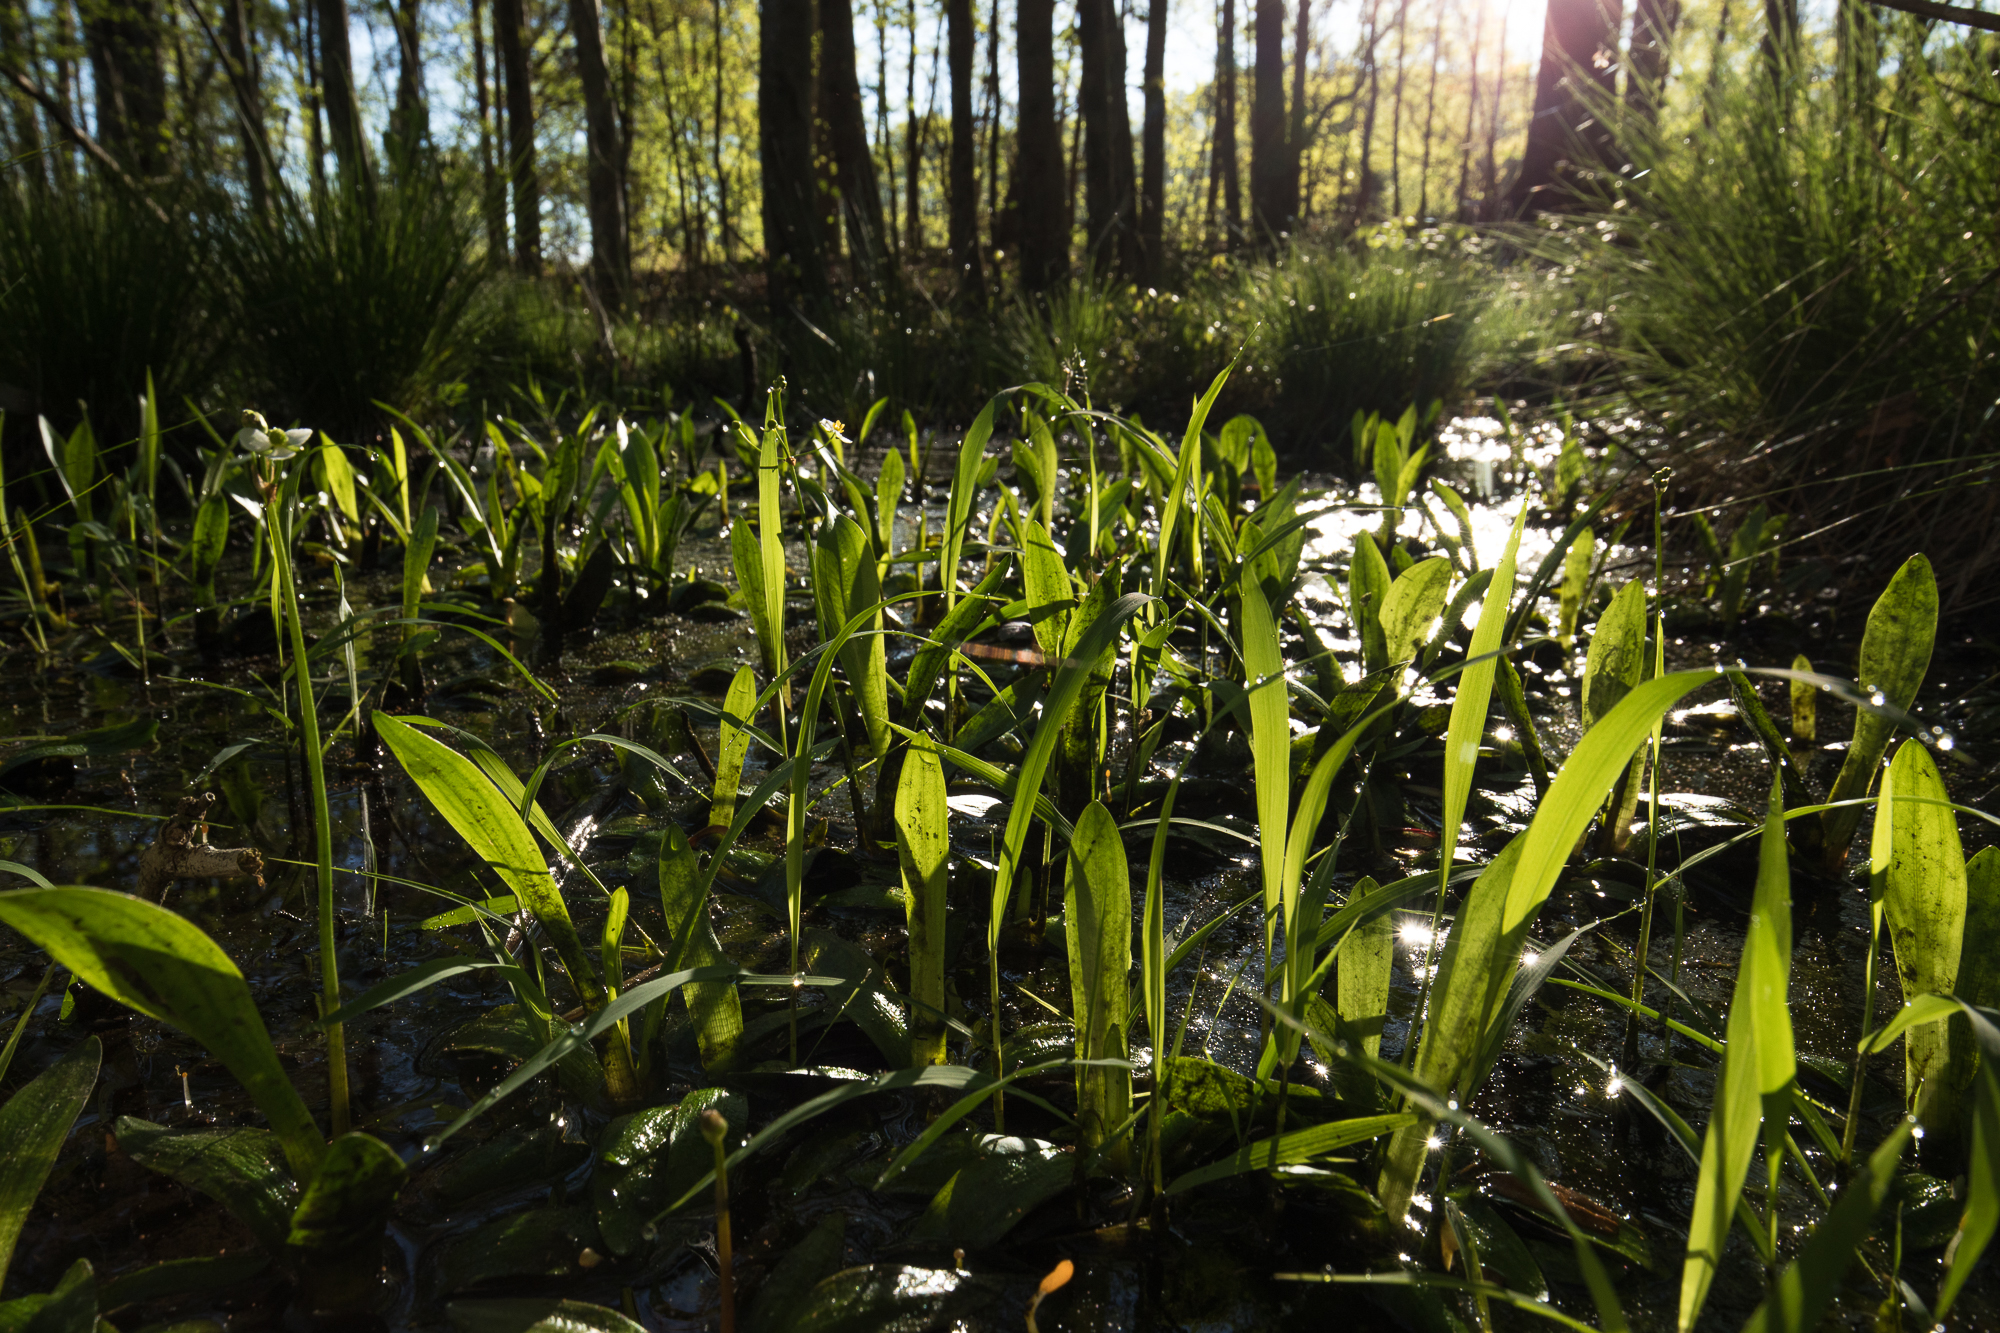 """Bunched arrowhead requires a particular habitat known as """"Piedmont seepage forest"""" that is very susceptible to damage or degradation from runoff that occurs when nearby areas are paved or disturbed. ( photo courtesy Mac Stone, Naturaland Trust )"""